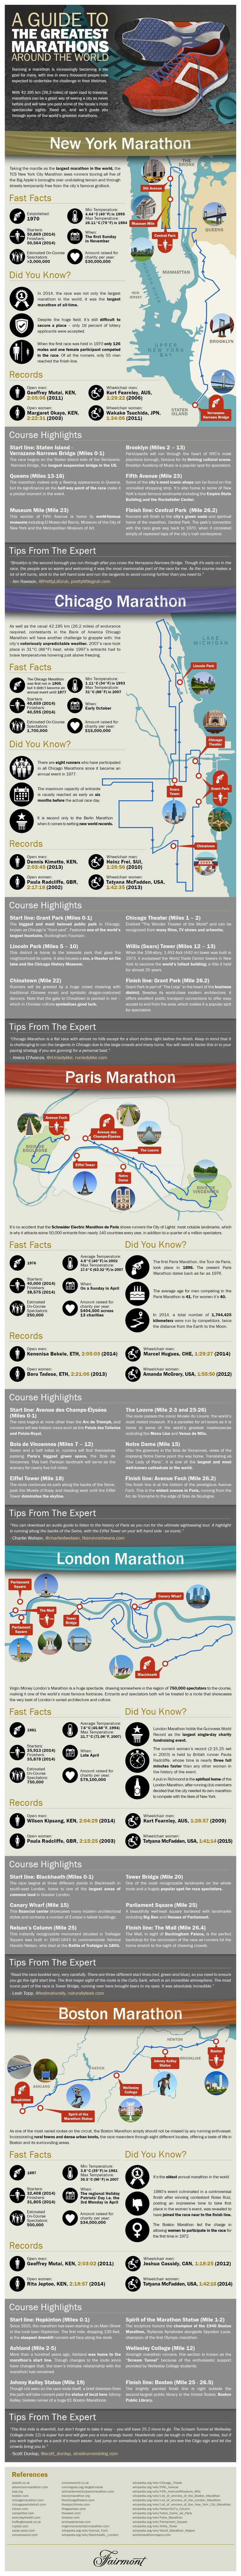 Explore some of the greatest marathons around the world with this useful infographic.